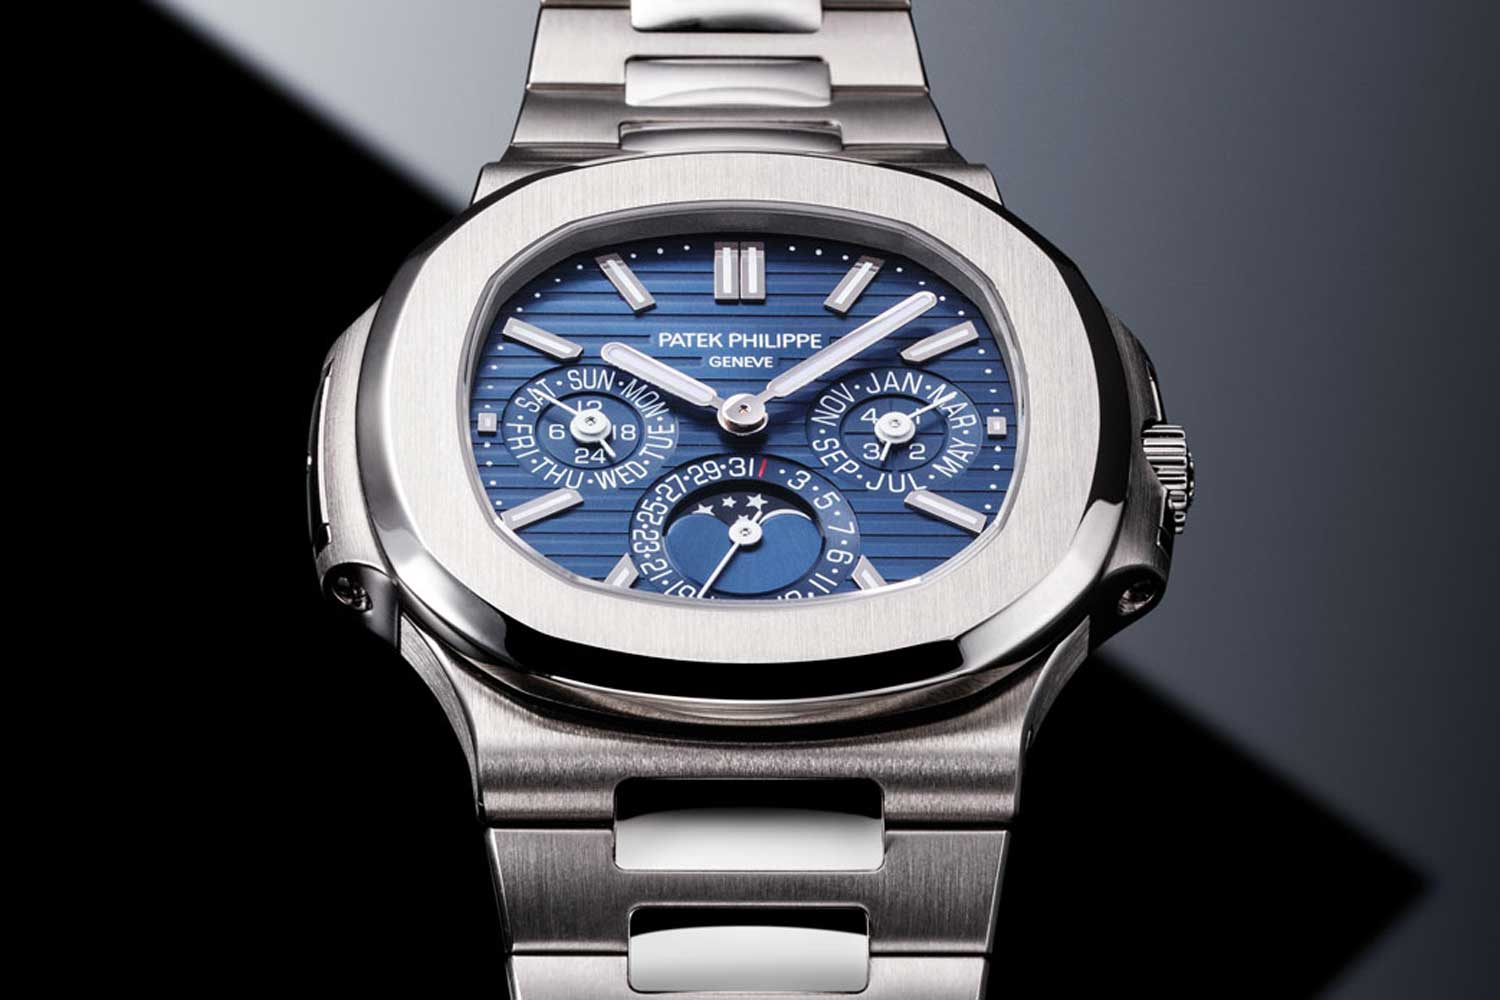 Revolution Awards 2018: Best Complication — Patek Philippe Nautilus Perpetual Calendar Ref. 5740/1G was introduced in 2018